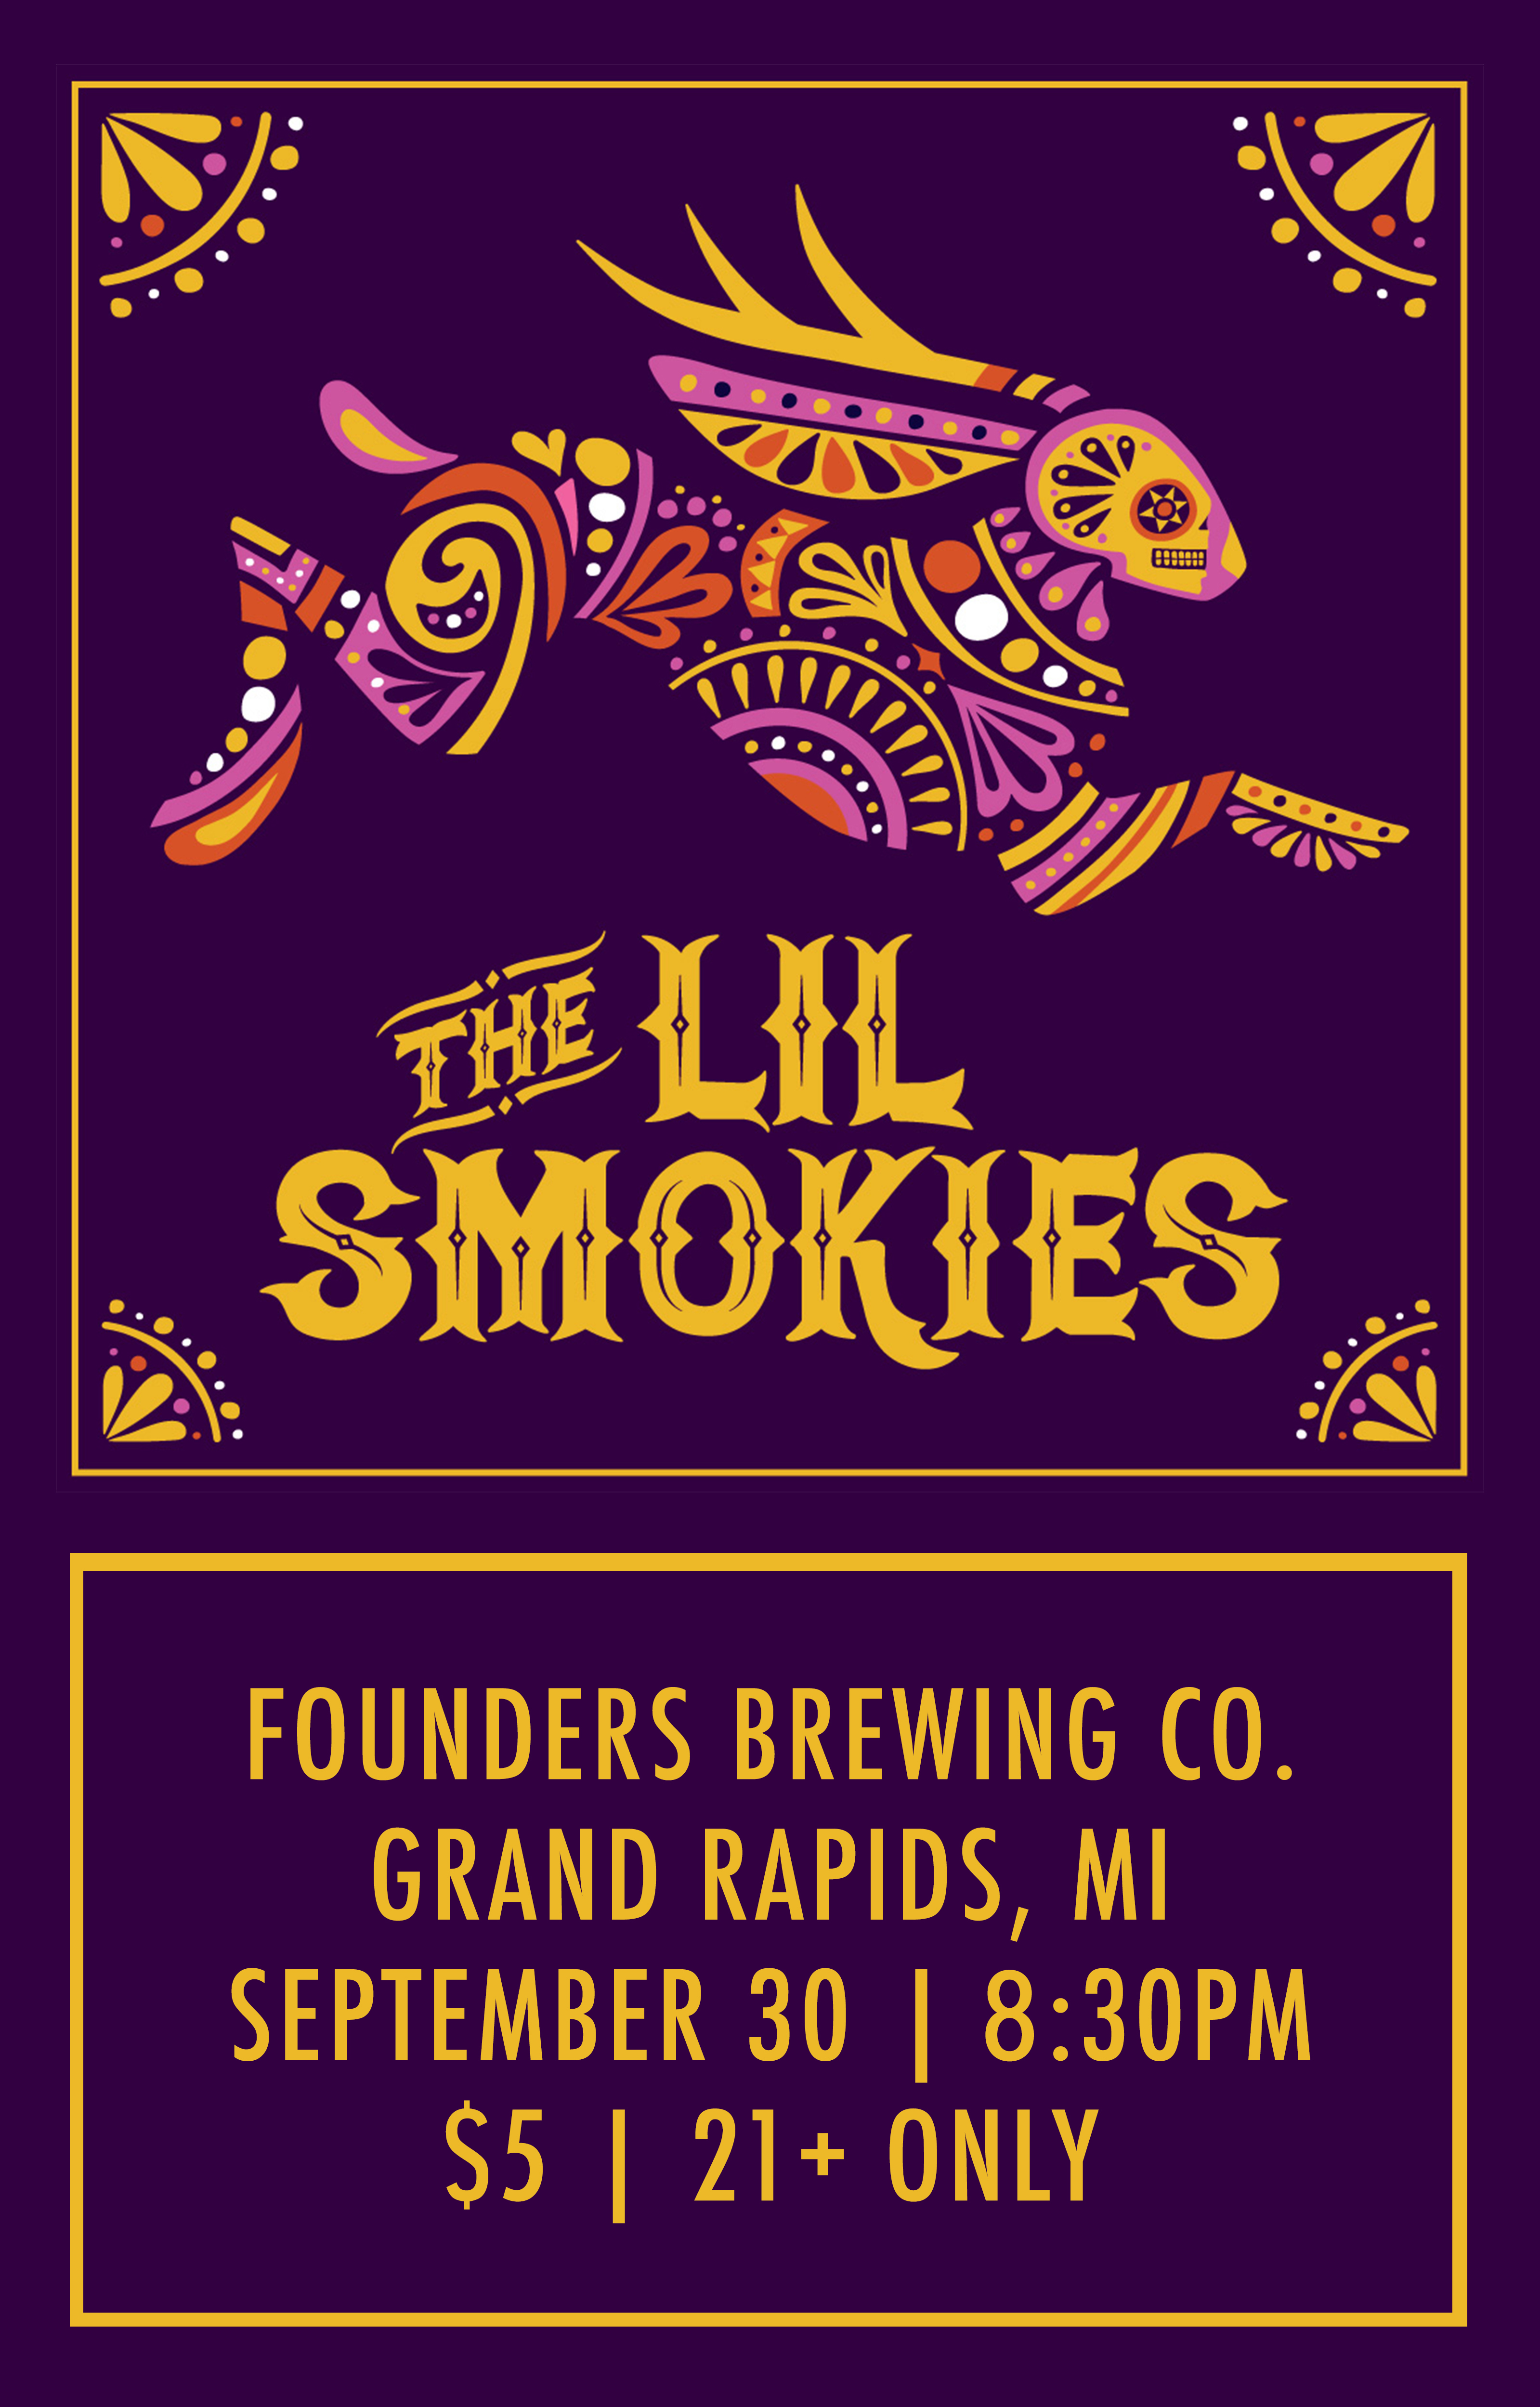 The Lil Smokies event poster